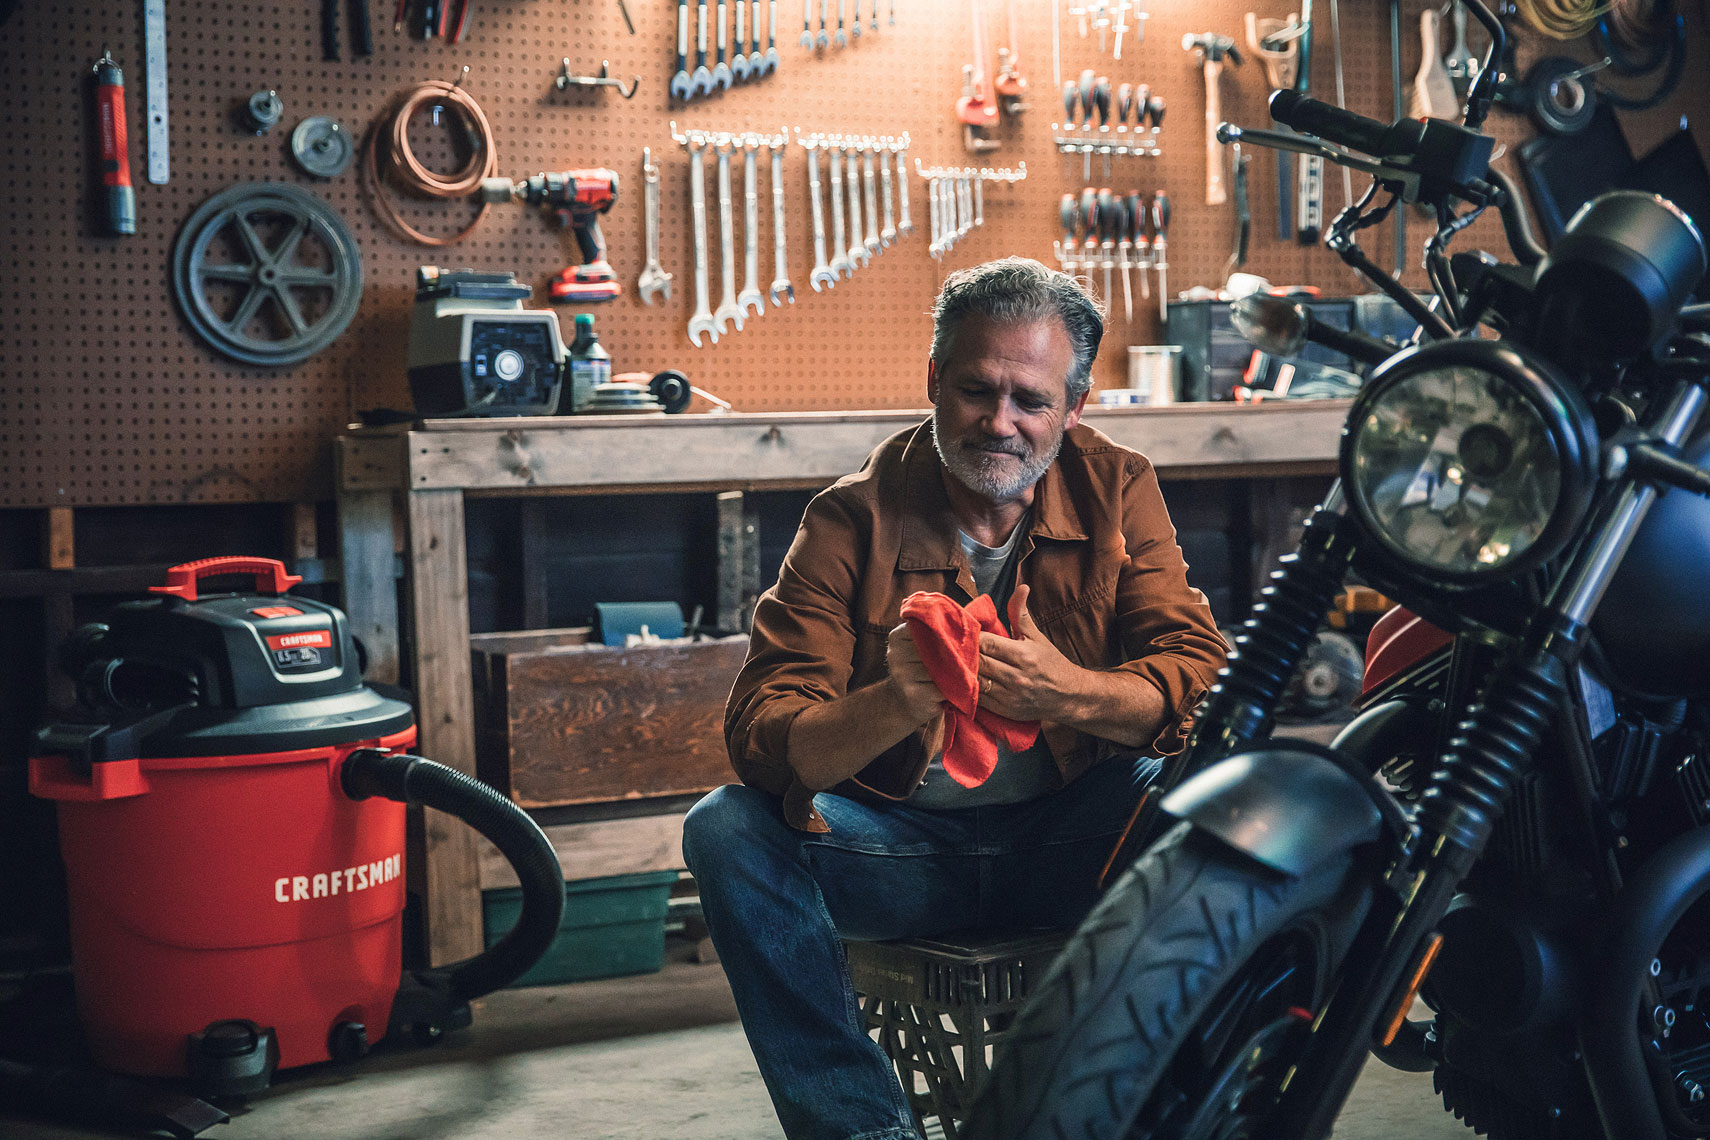 Craftsman Tools 20Gallon Wet/Dry Vacuum | Man working on his Moto Guzzi motorcycle with Craftsman vac in the background. | John Fedele Product Photography